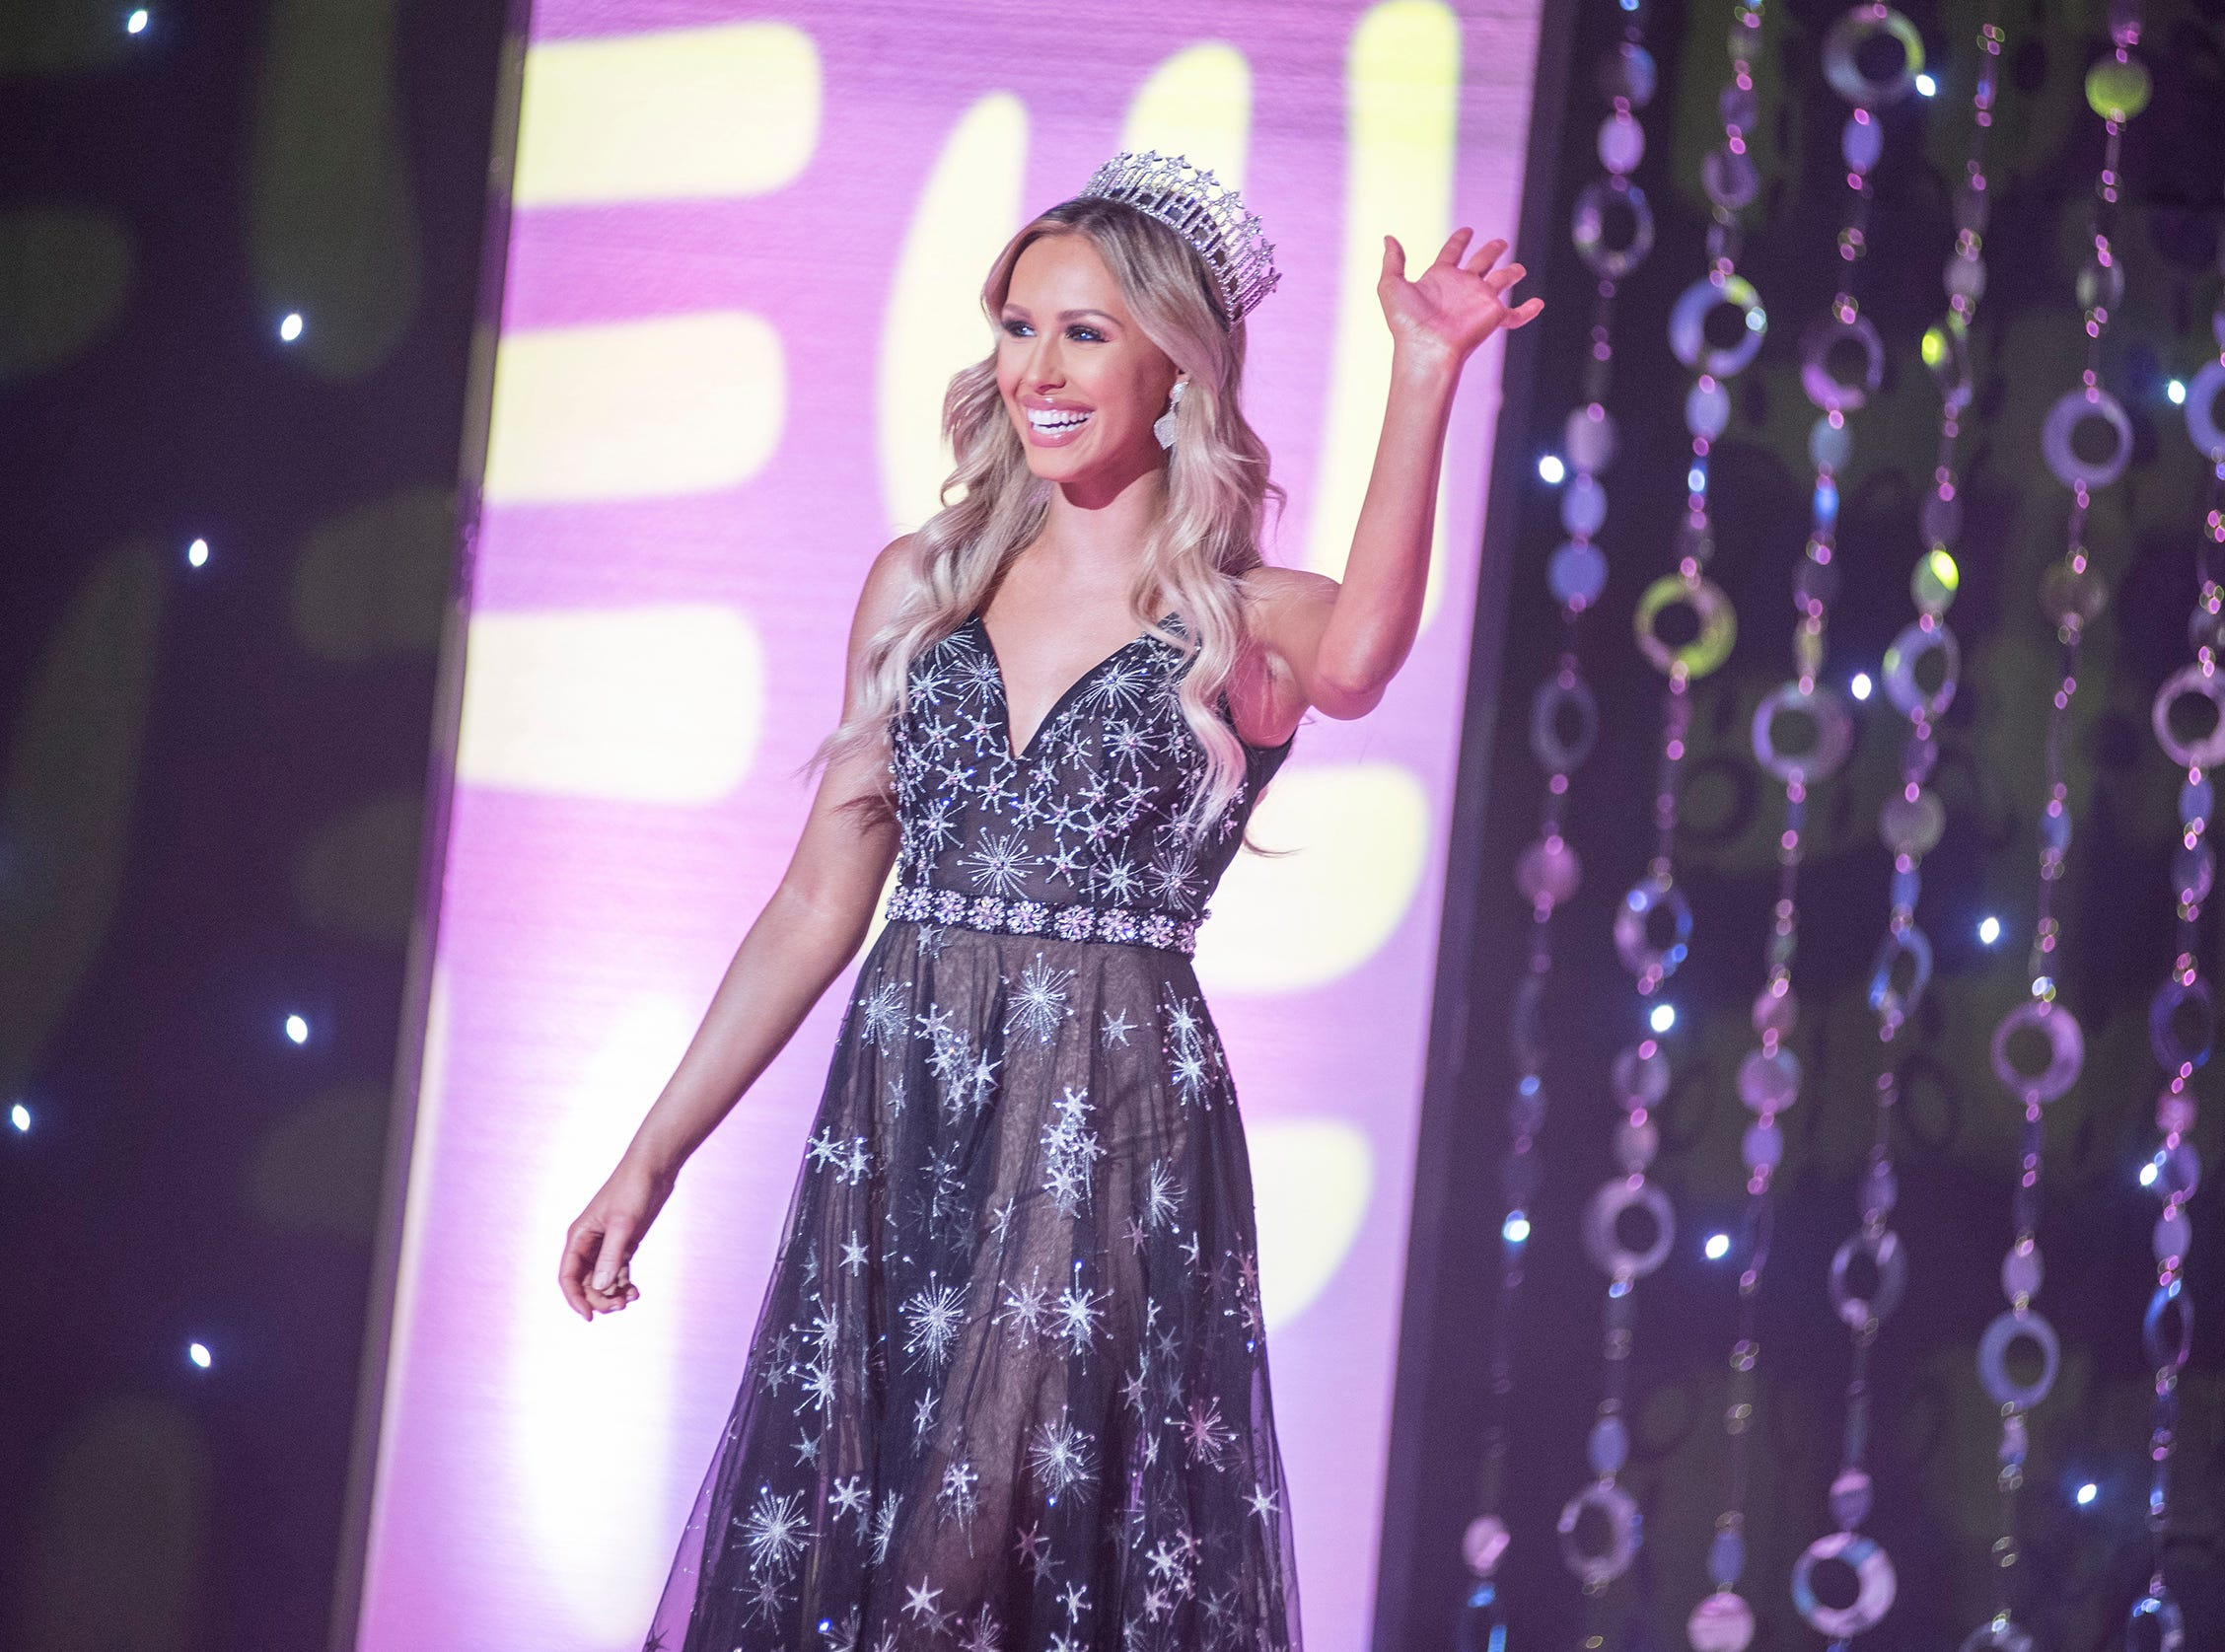 Miss Michigan USA 2018 Elizabeth Johnson walks onto the stage Saturday, Sept. 22, 2018 during the Miss Michigan USA pageant at McMorran Theater.